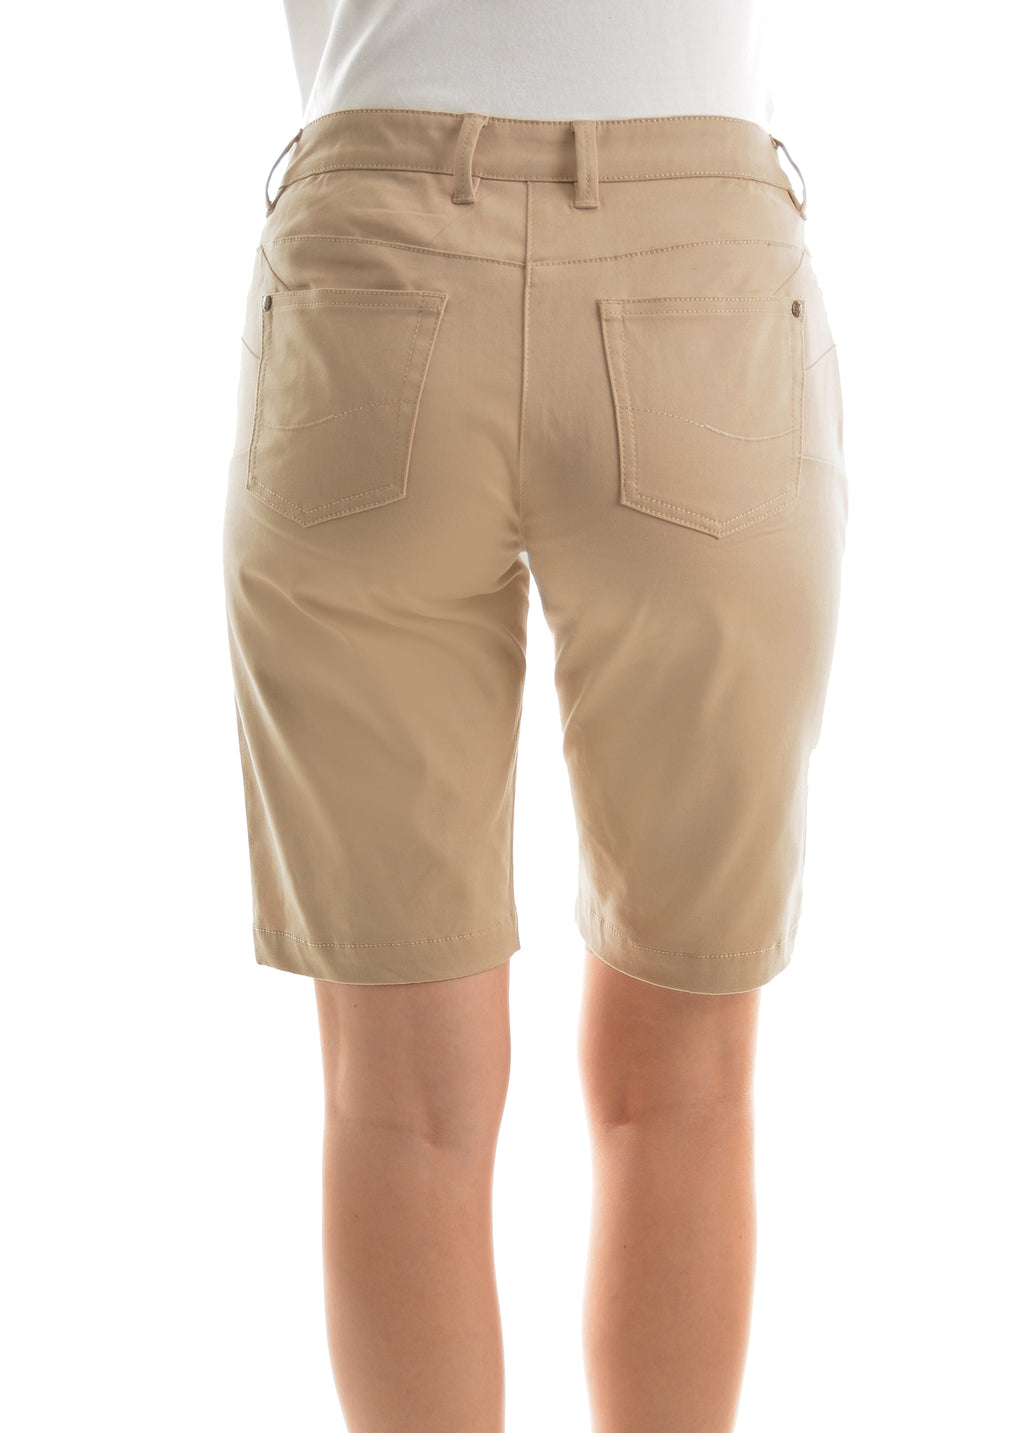 Thomas Cook | Womens | Shorts | Lucinda | Oatmeal